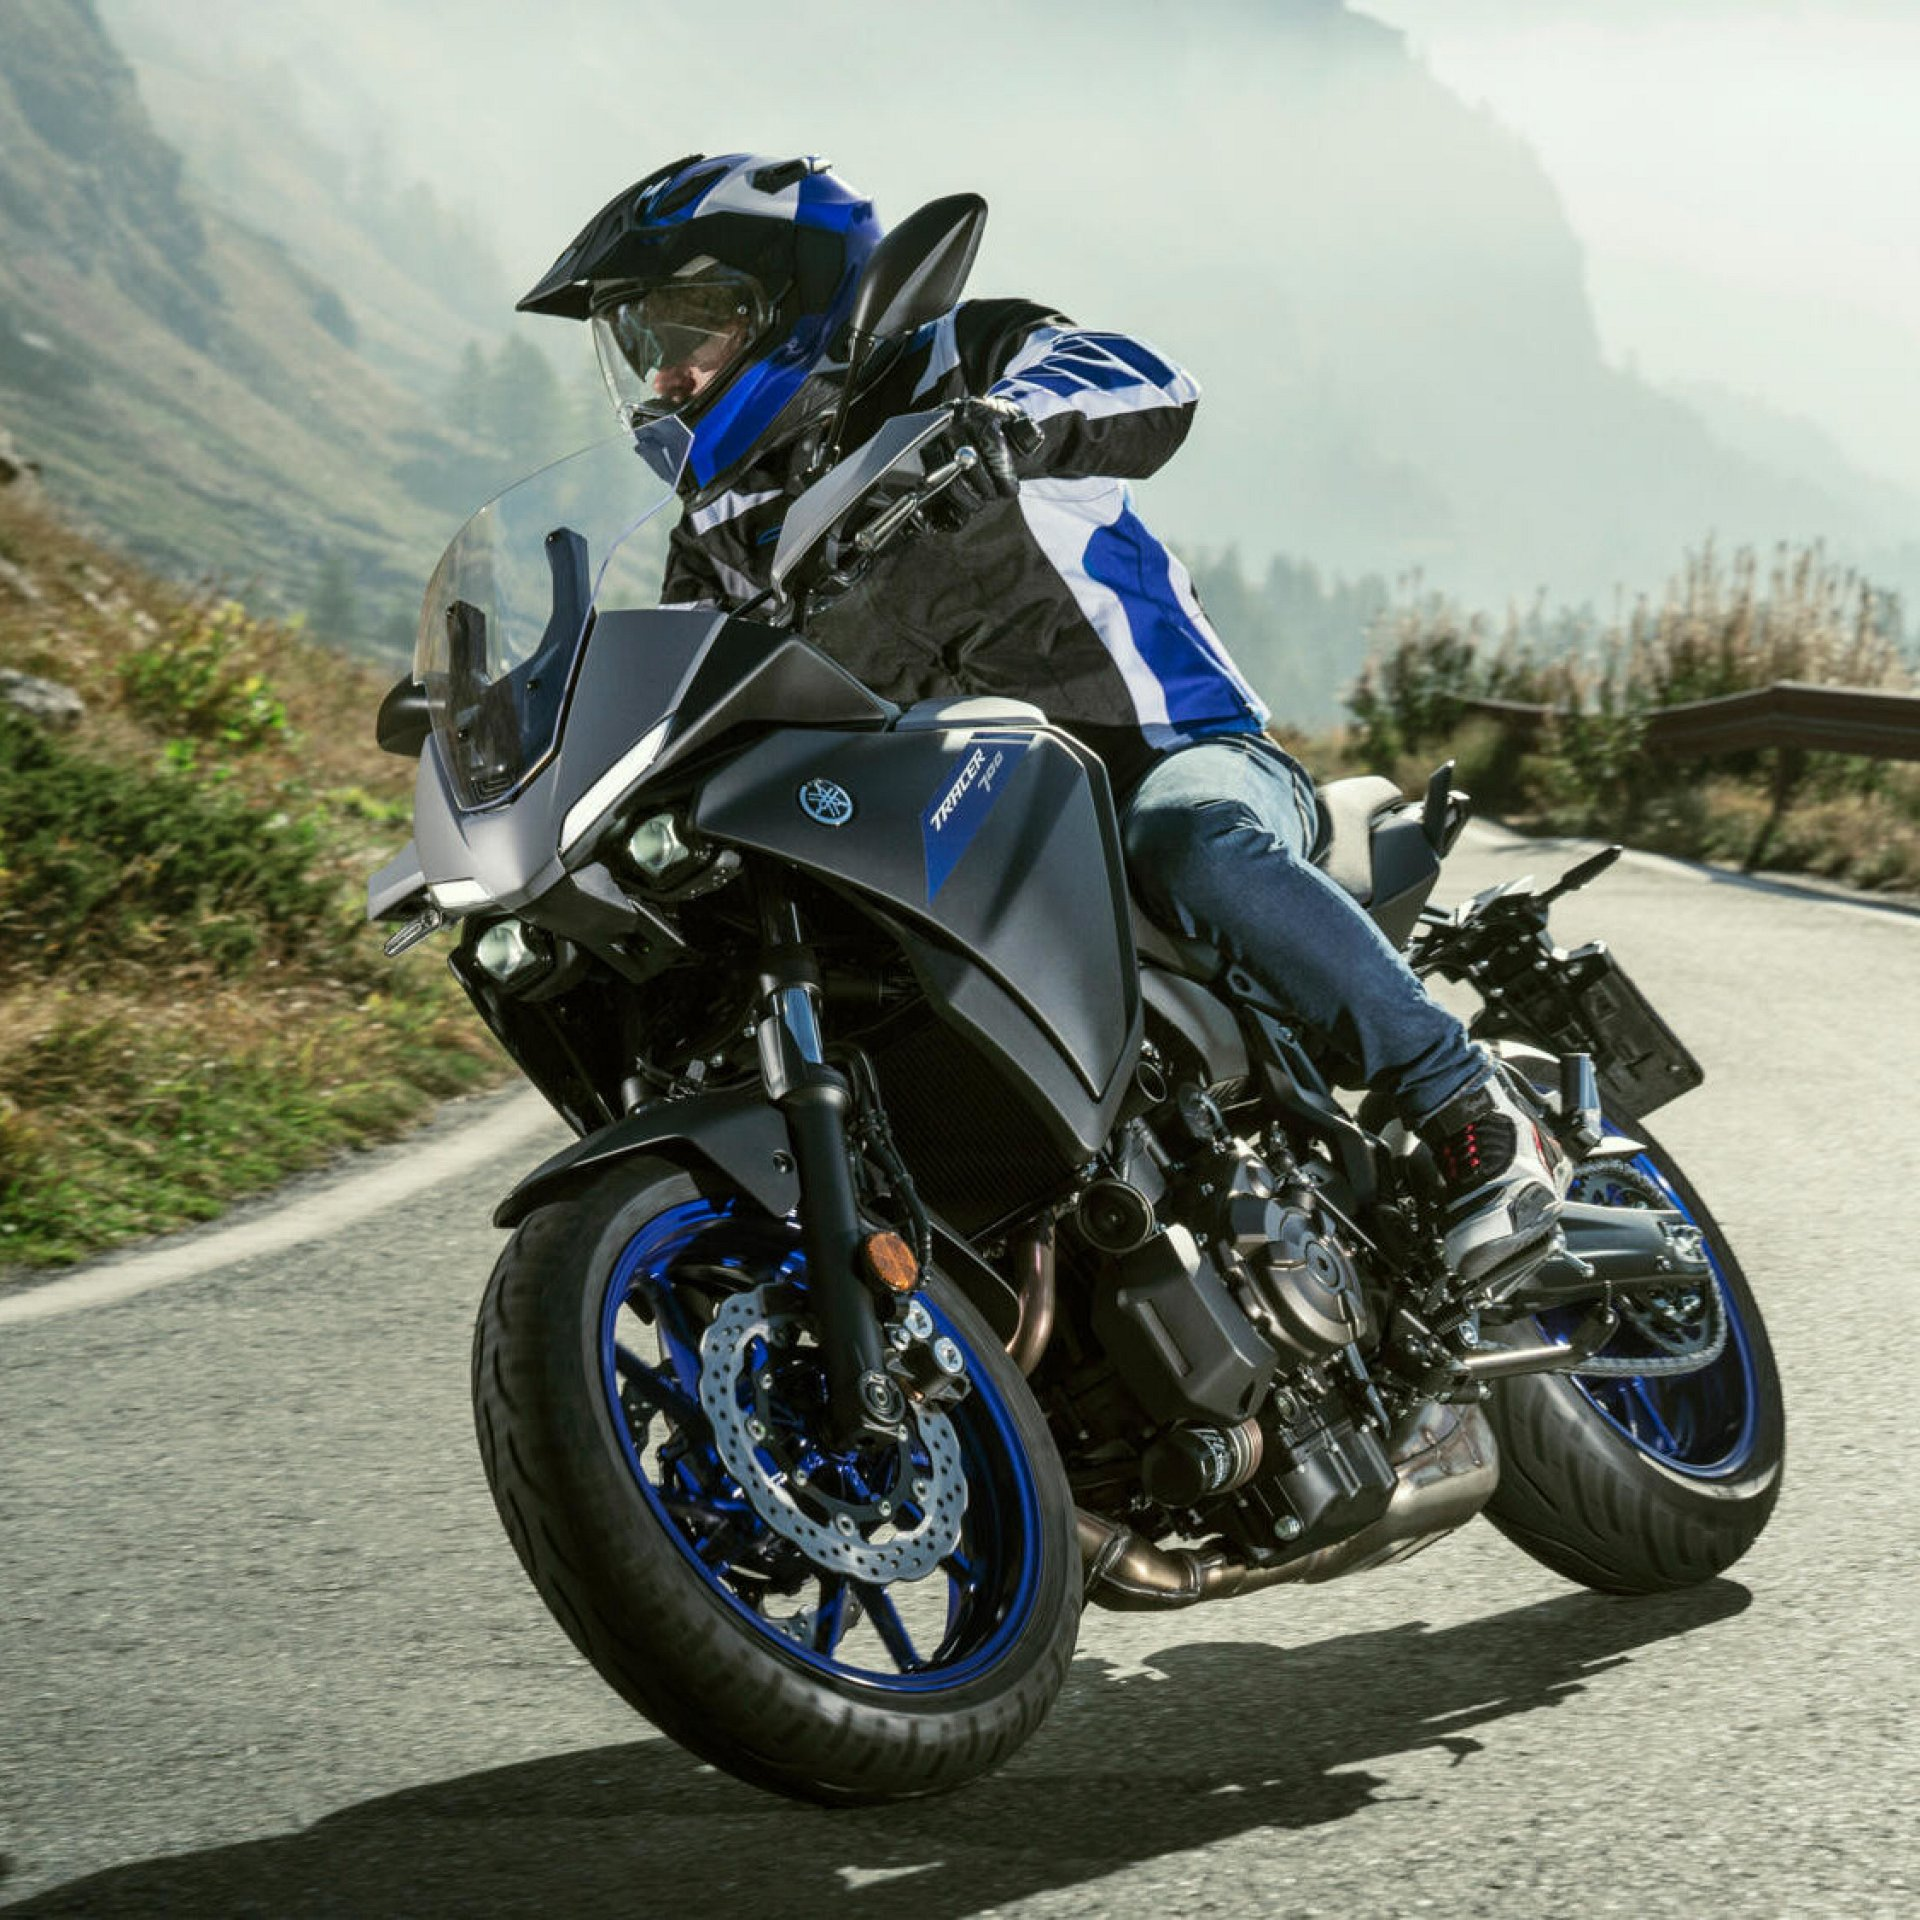 View the brand new and more aggressive 2020 version the Yamaha Tracer 700.